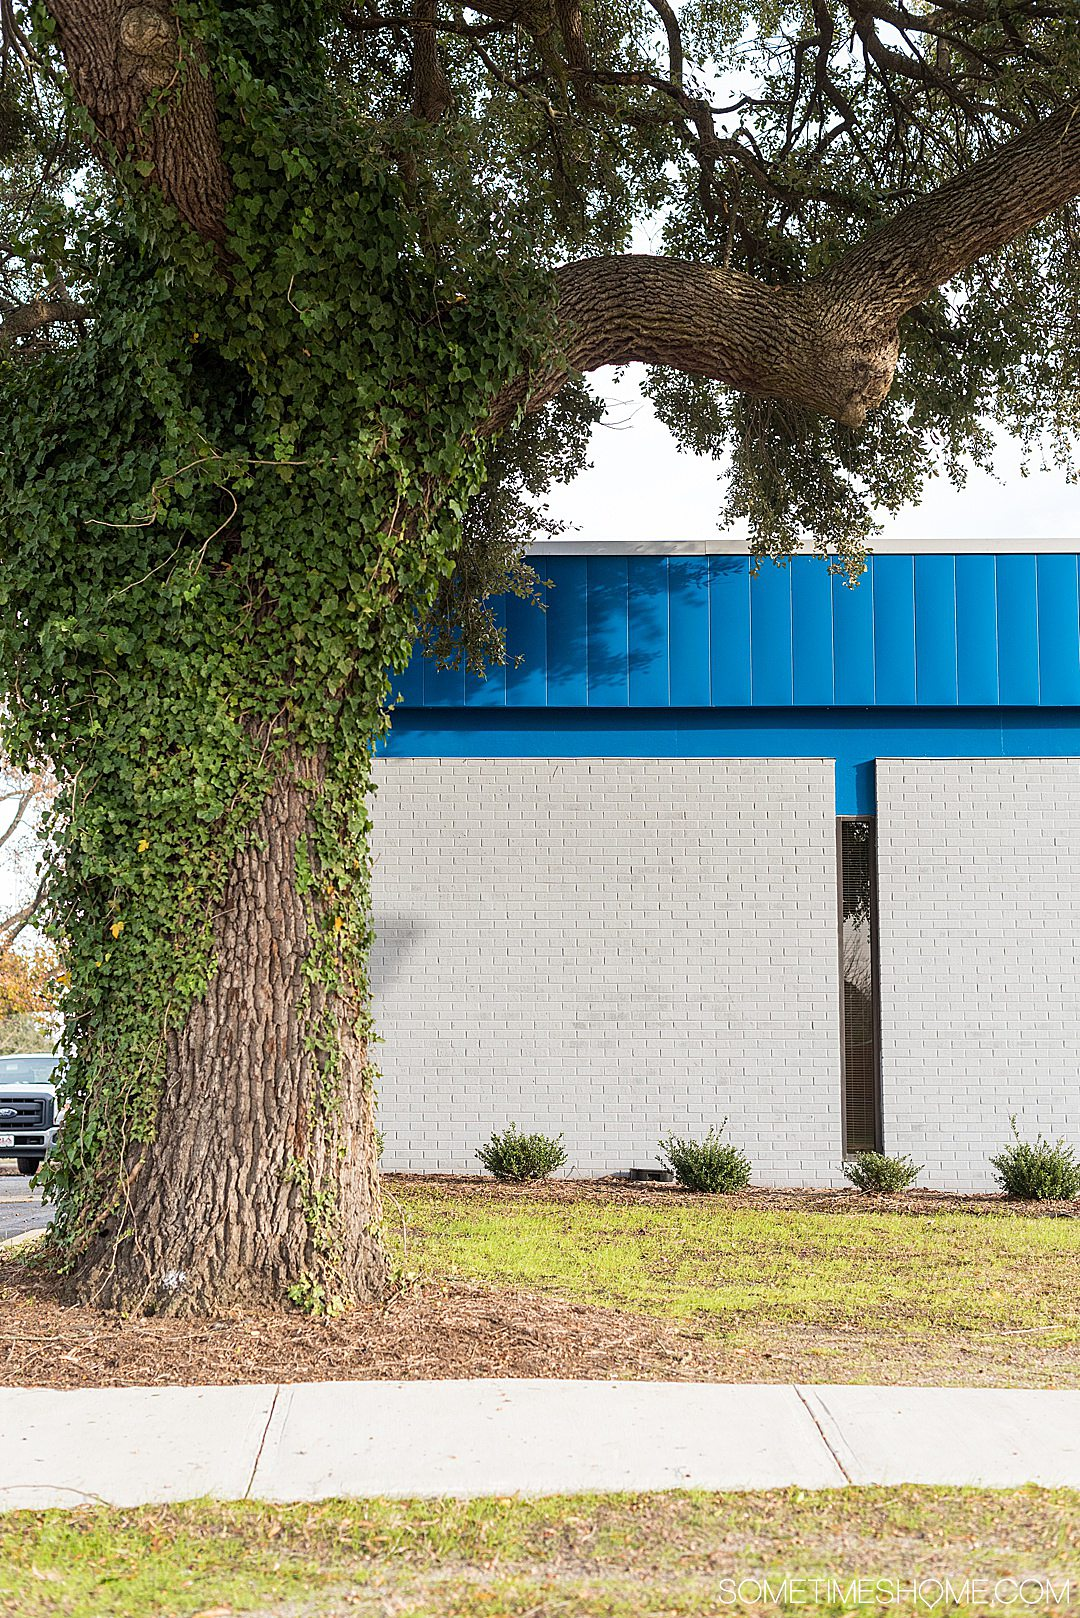 Blue and white building with ivy on a tree in downtown Goldsboro, NC